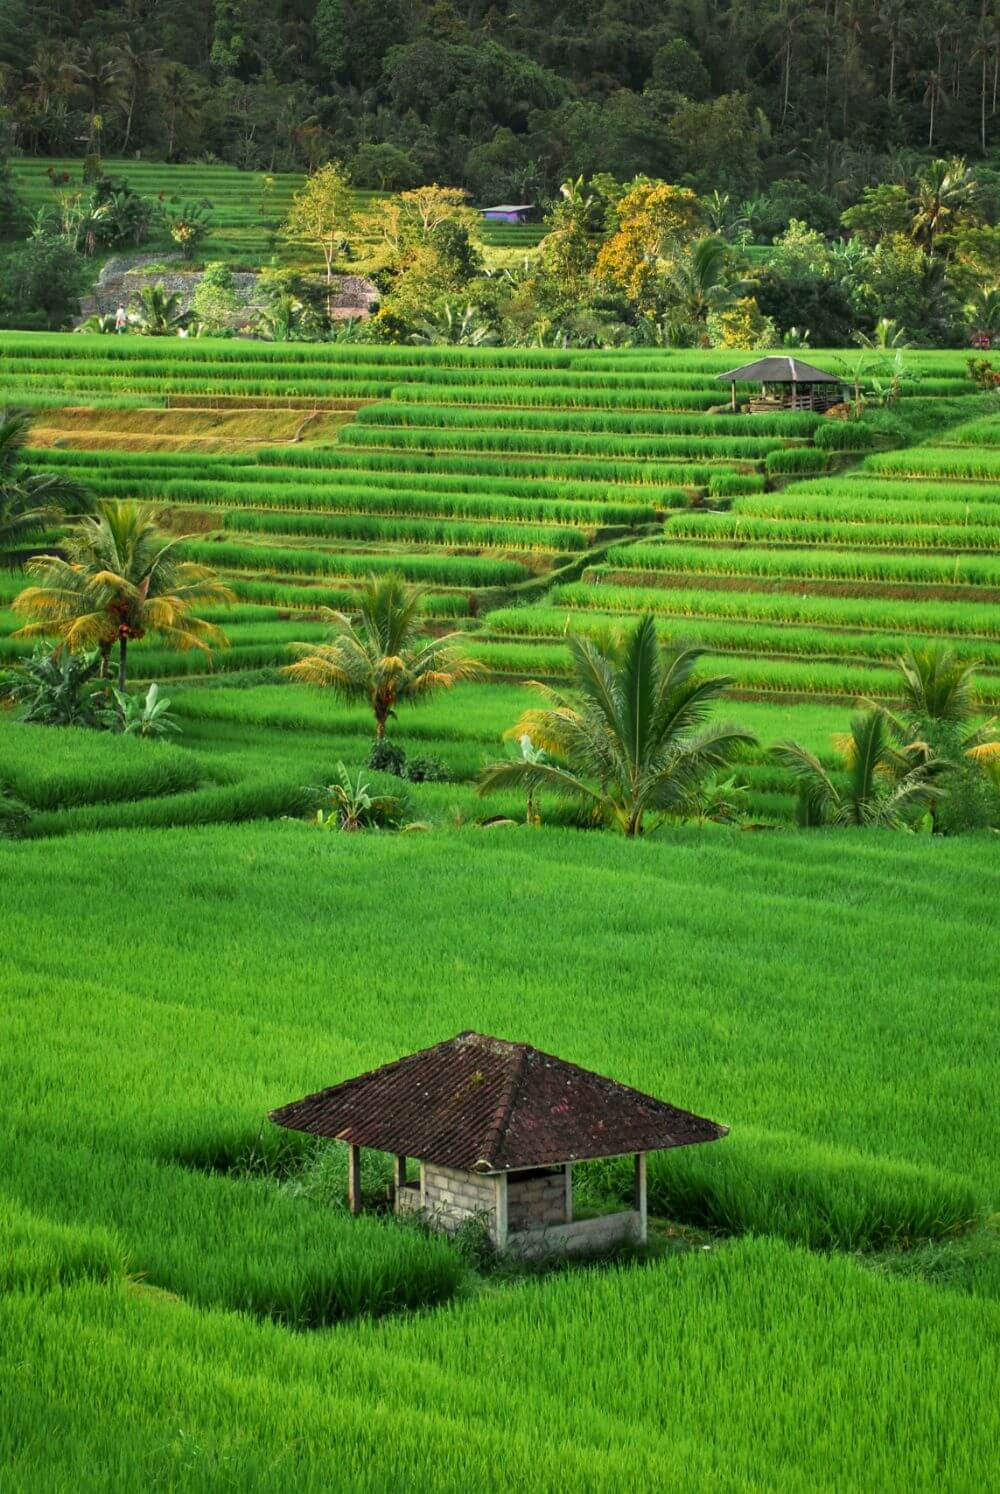 Best places in Bali to take amazing Instagram pictures